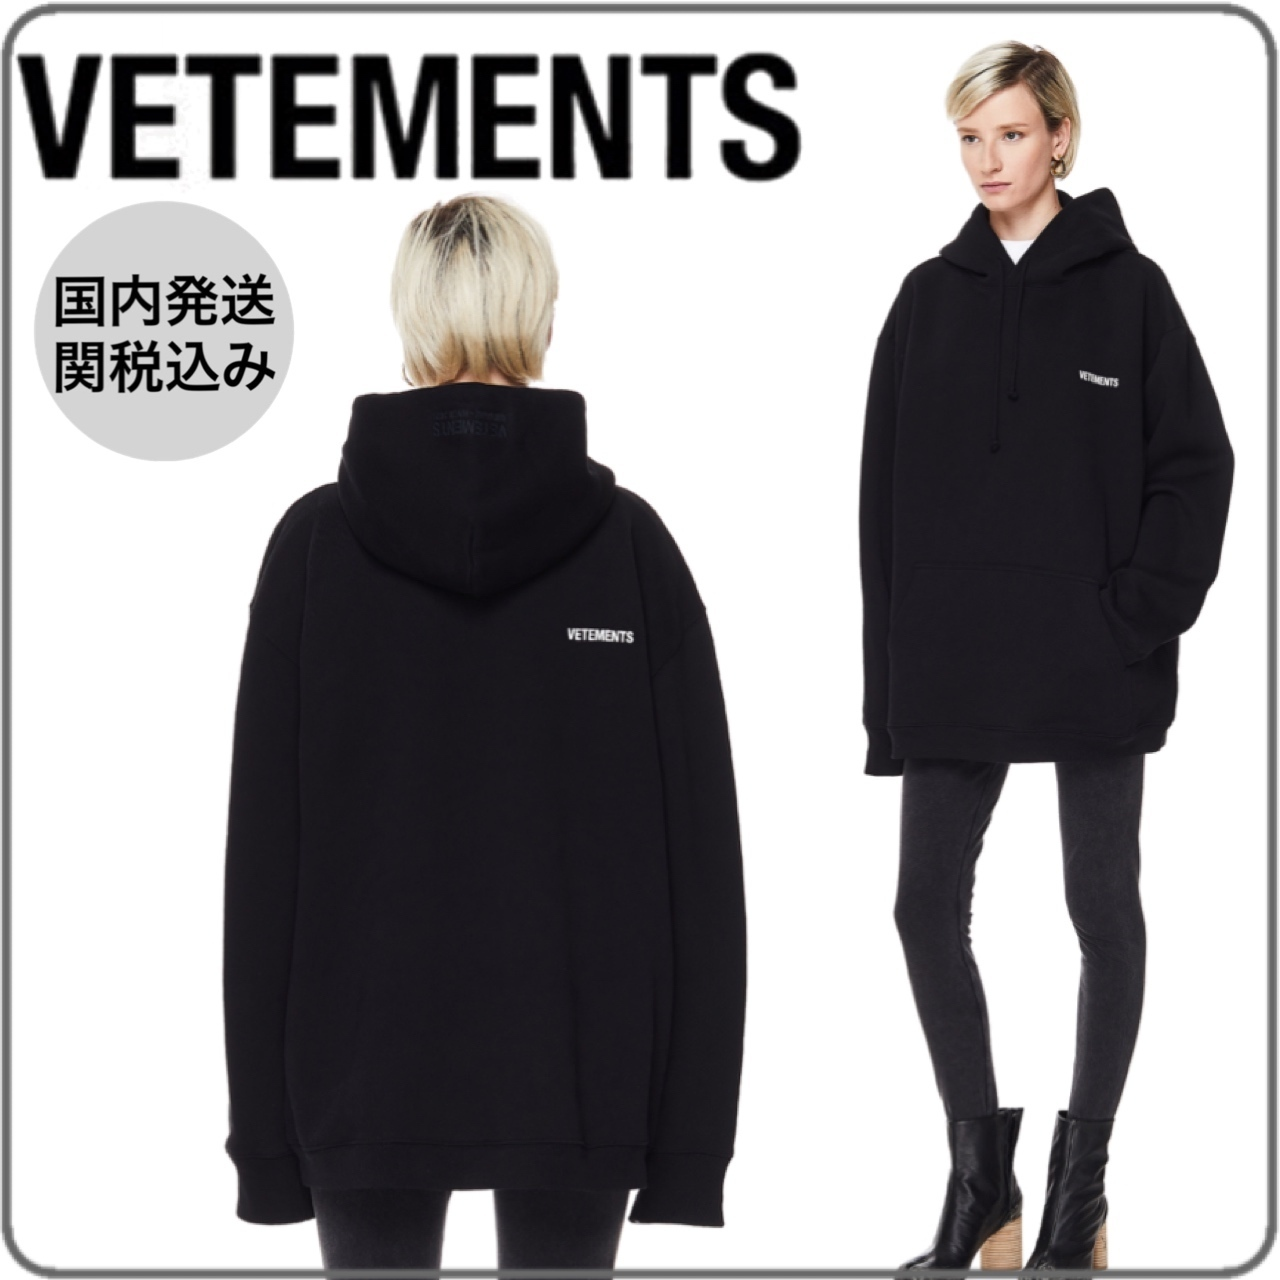 shop vetements clothing